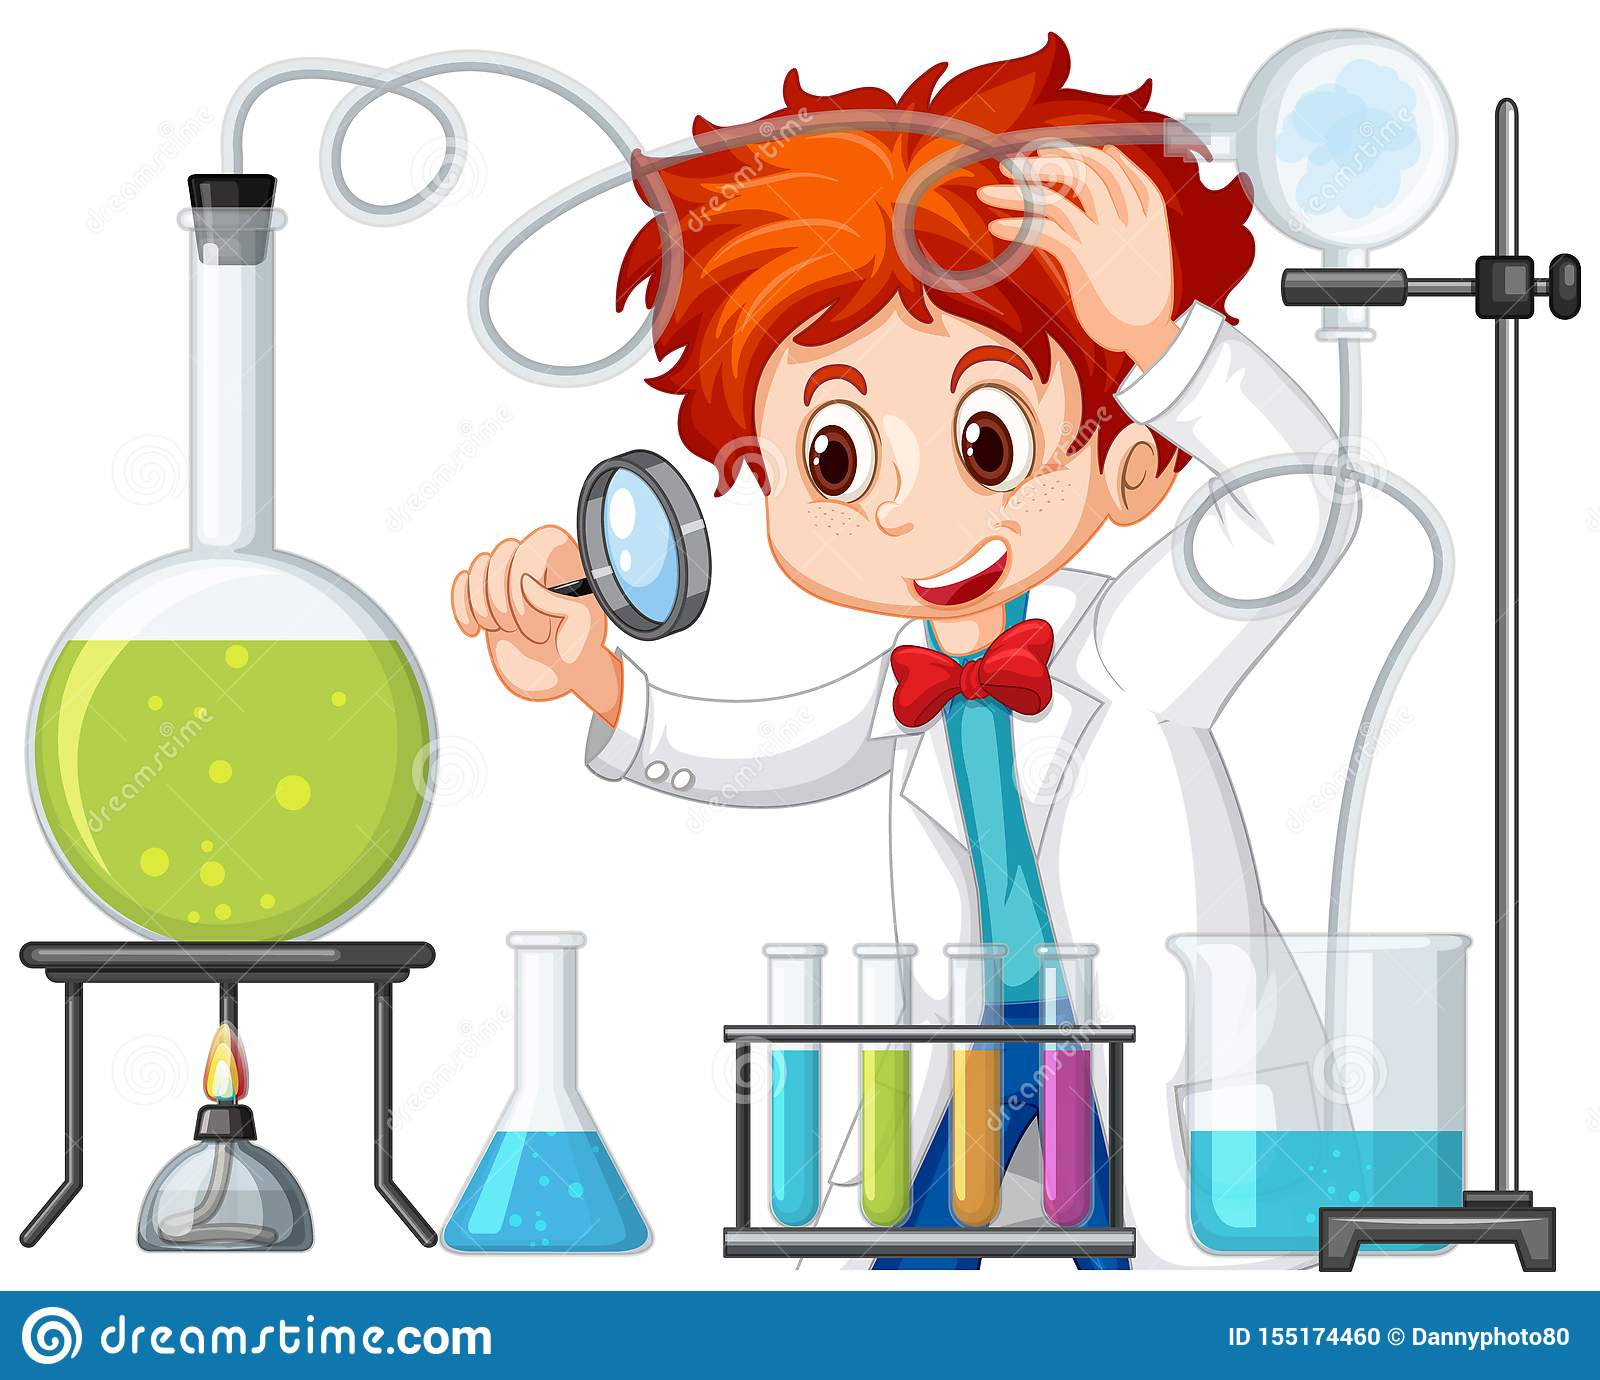 Scientist Working With Science Tools In Lab Stock Vector